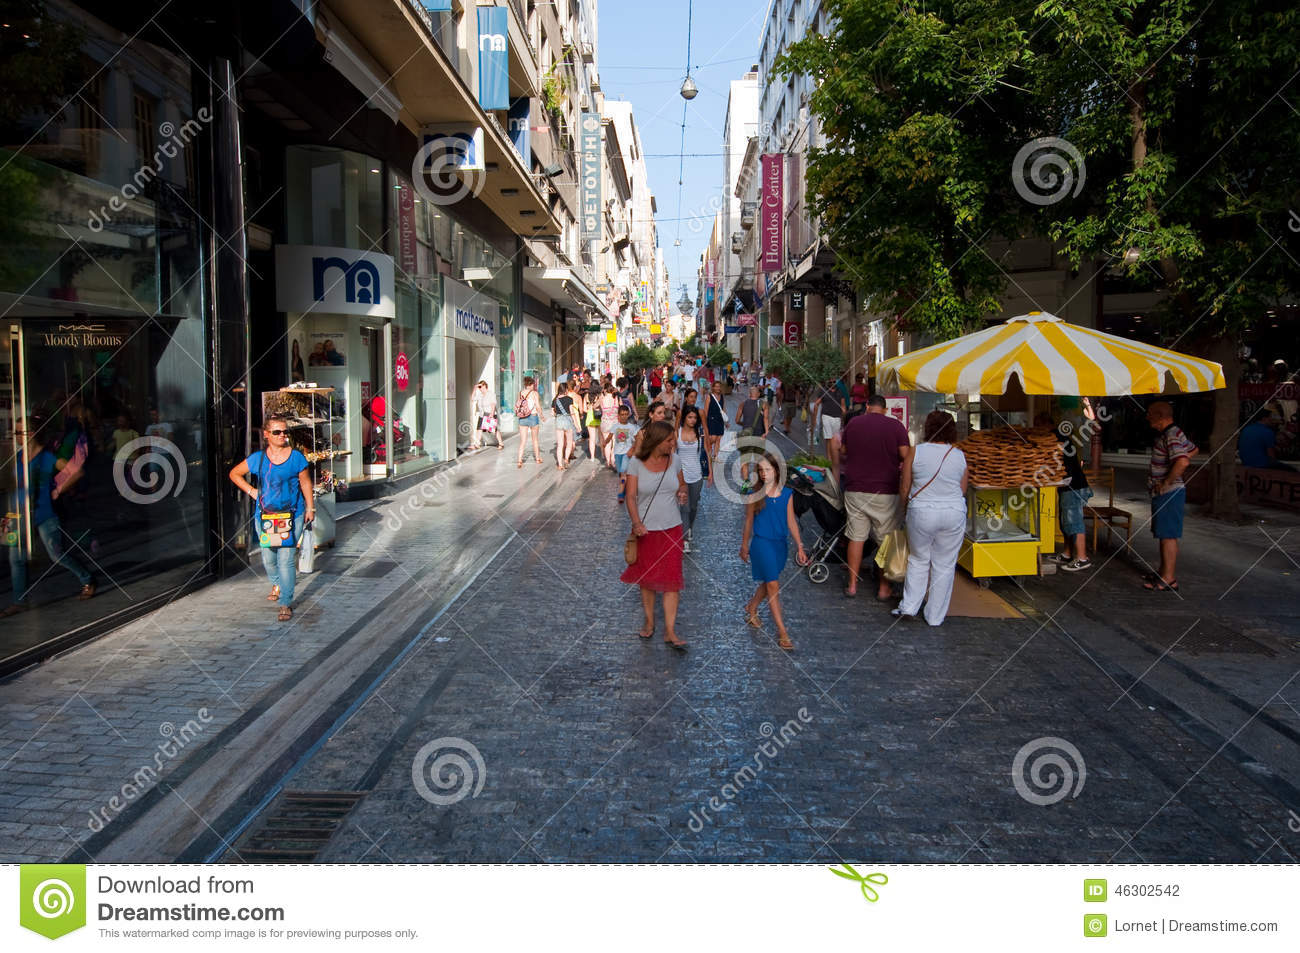 ATHENS-AUGUST 22: Shopping on Ermou Street with crowd of people on August 22, 2014 in Athens, Greece.